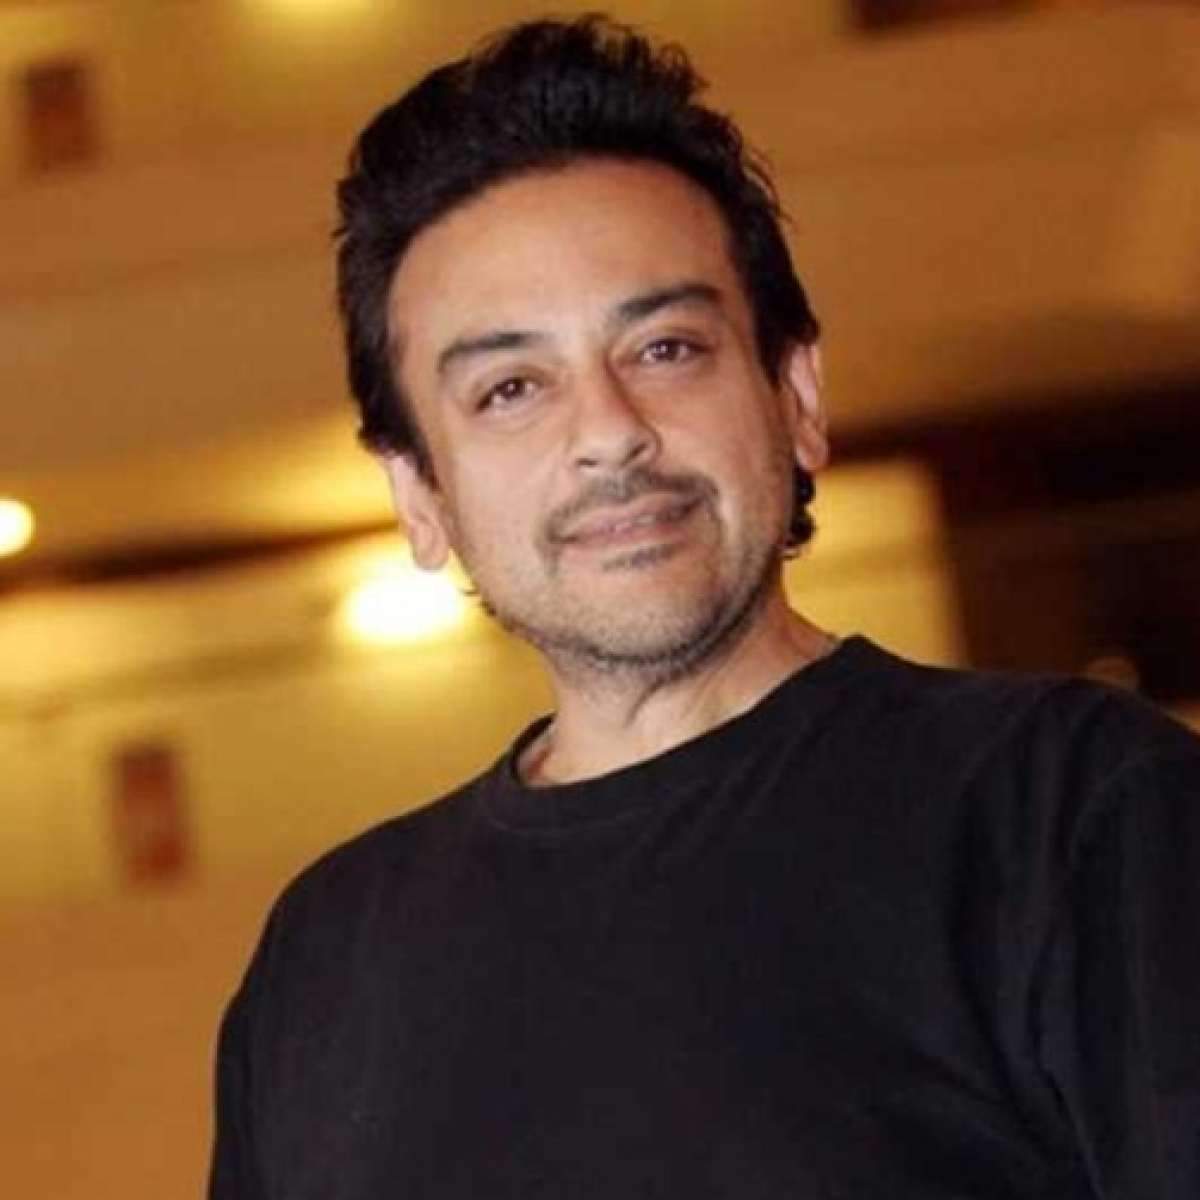 'Hey kid, did you get your brain from a clearance sale?': Adnan Sami hits out at Congress over Padma Shri award remark